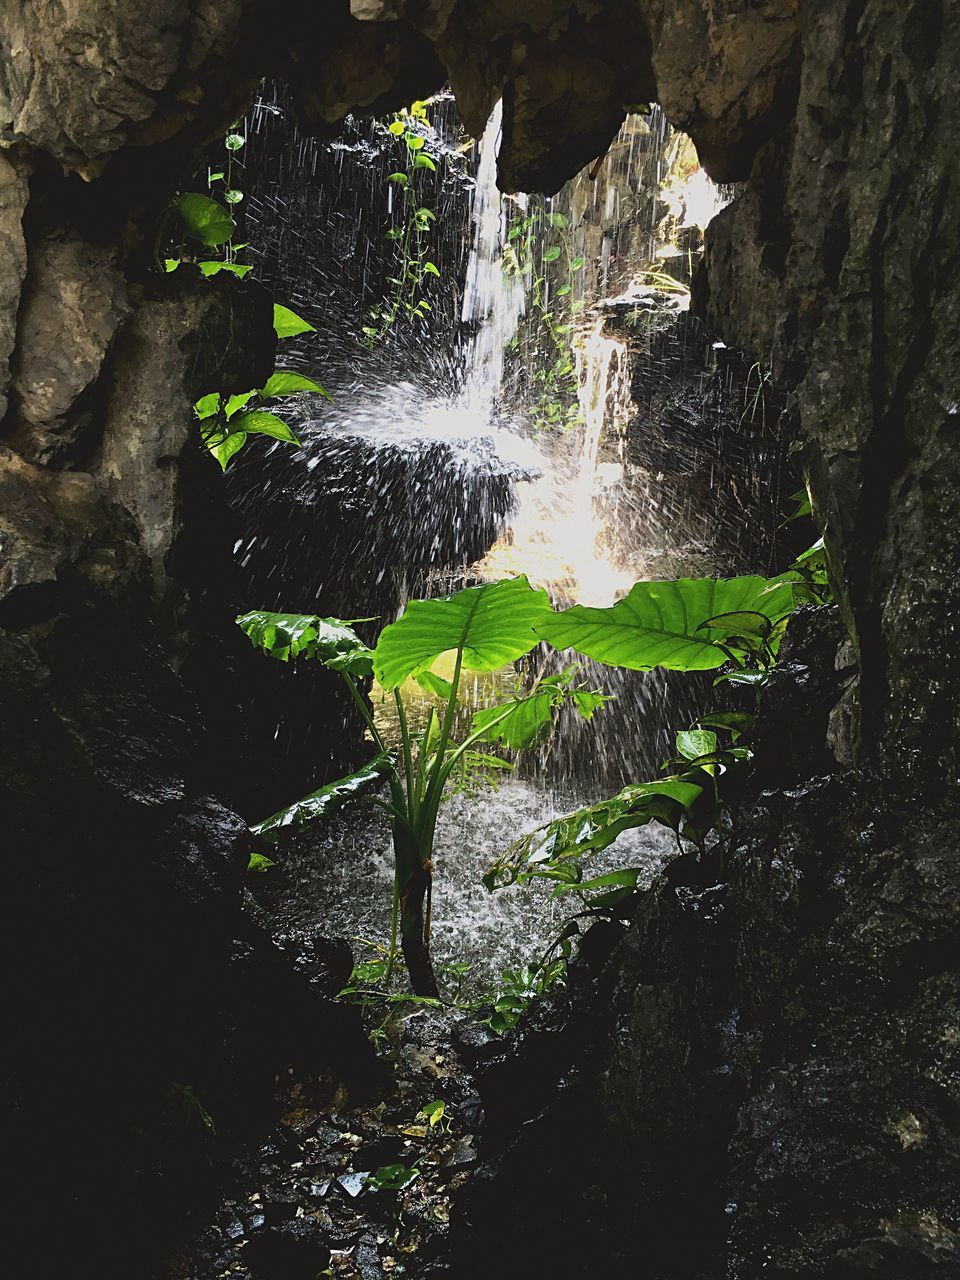 nature, waterfall, beauty in nature, forest, growth, tree, rock - object, plant, green color, tranquility, moss, motion, scenics, flowing water, tranquil scene, day, outdoors, no people, rock formation, idyllic, tree trunk, flowing, non-urban scene, lush foliage, non urban scene, green, remote, growing